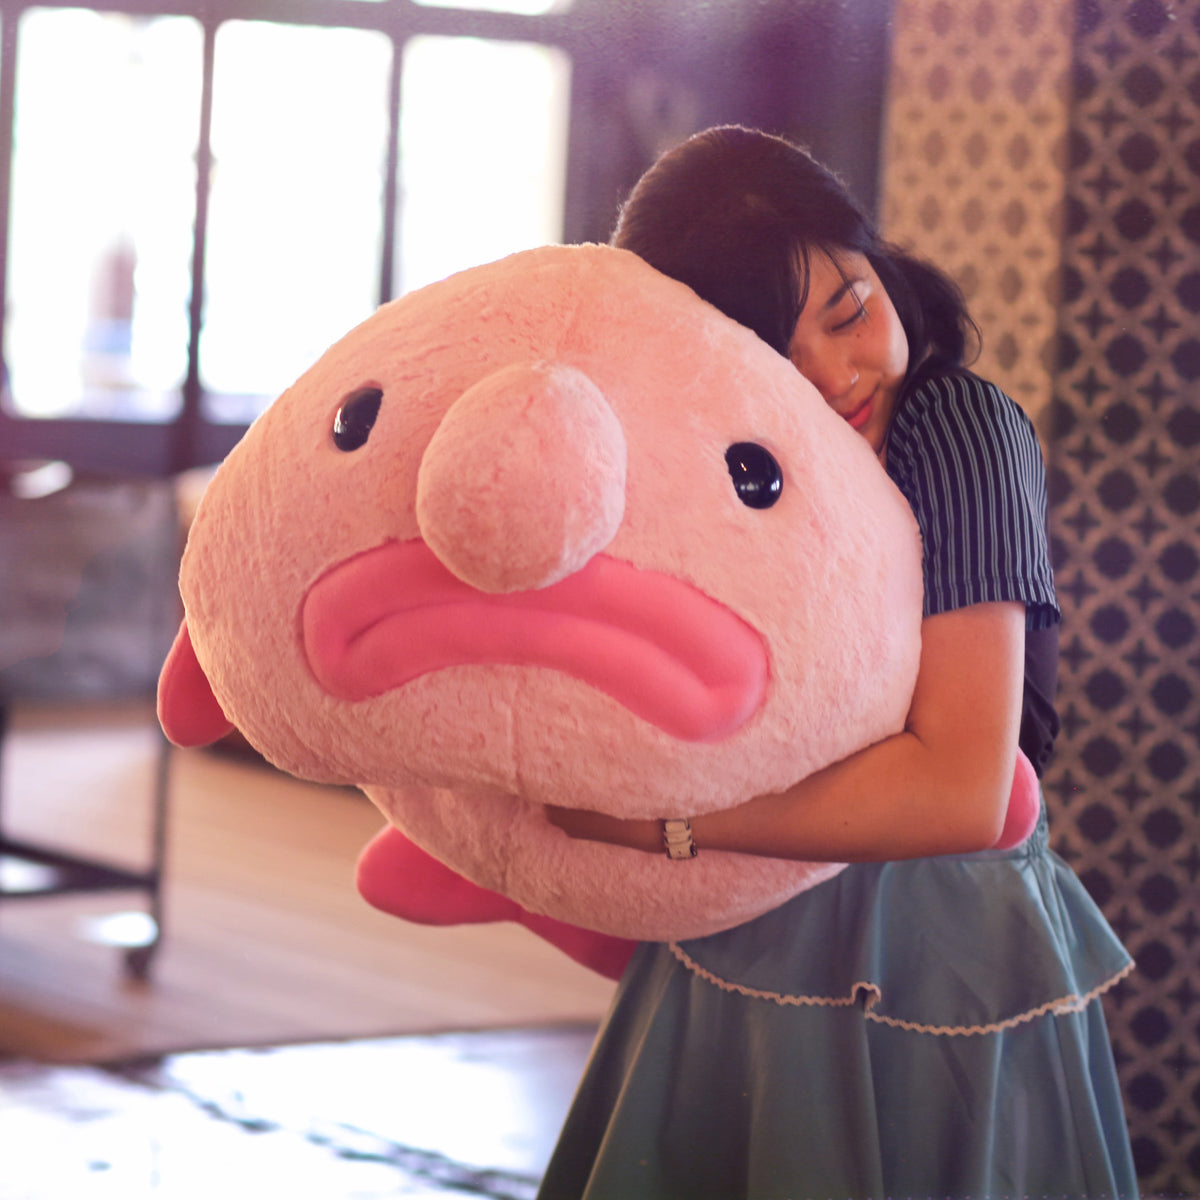 Huge blobfish with model